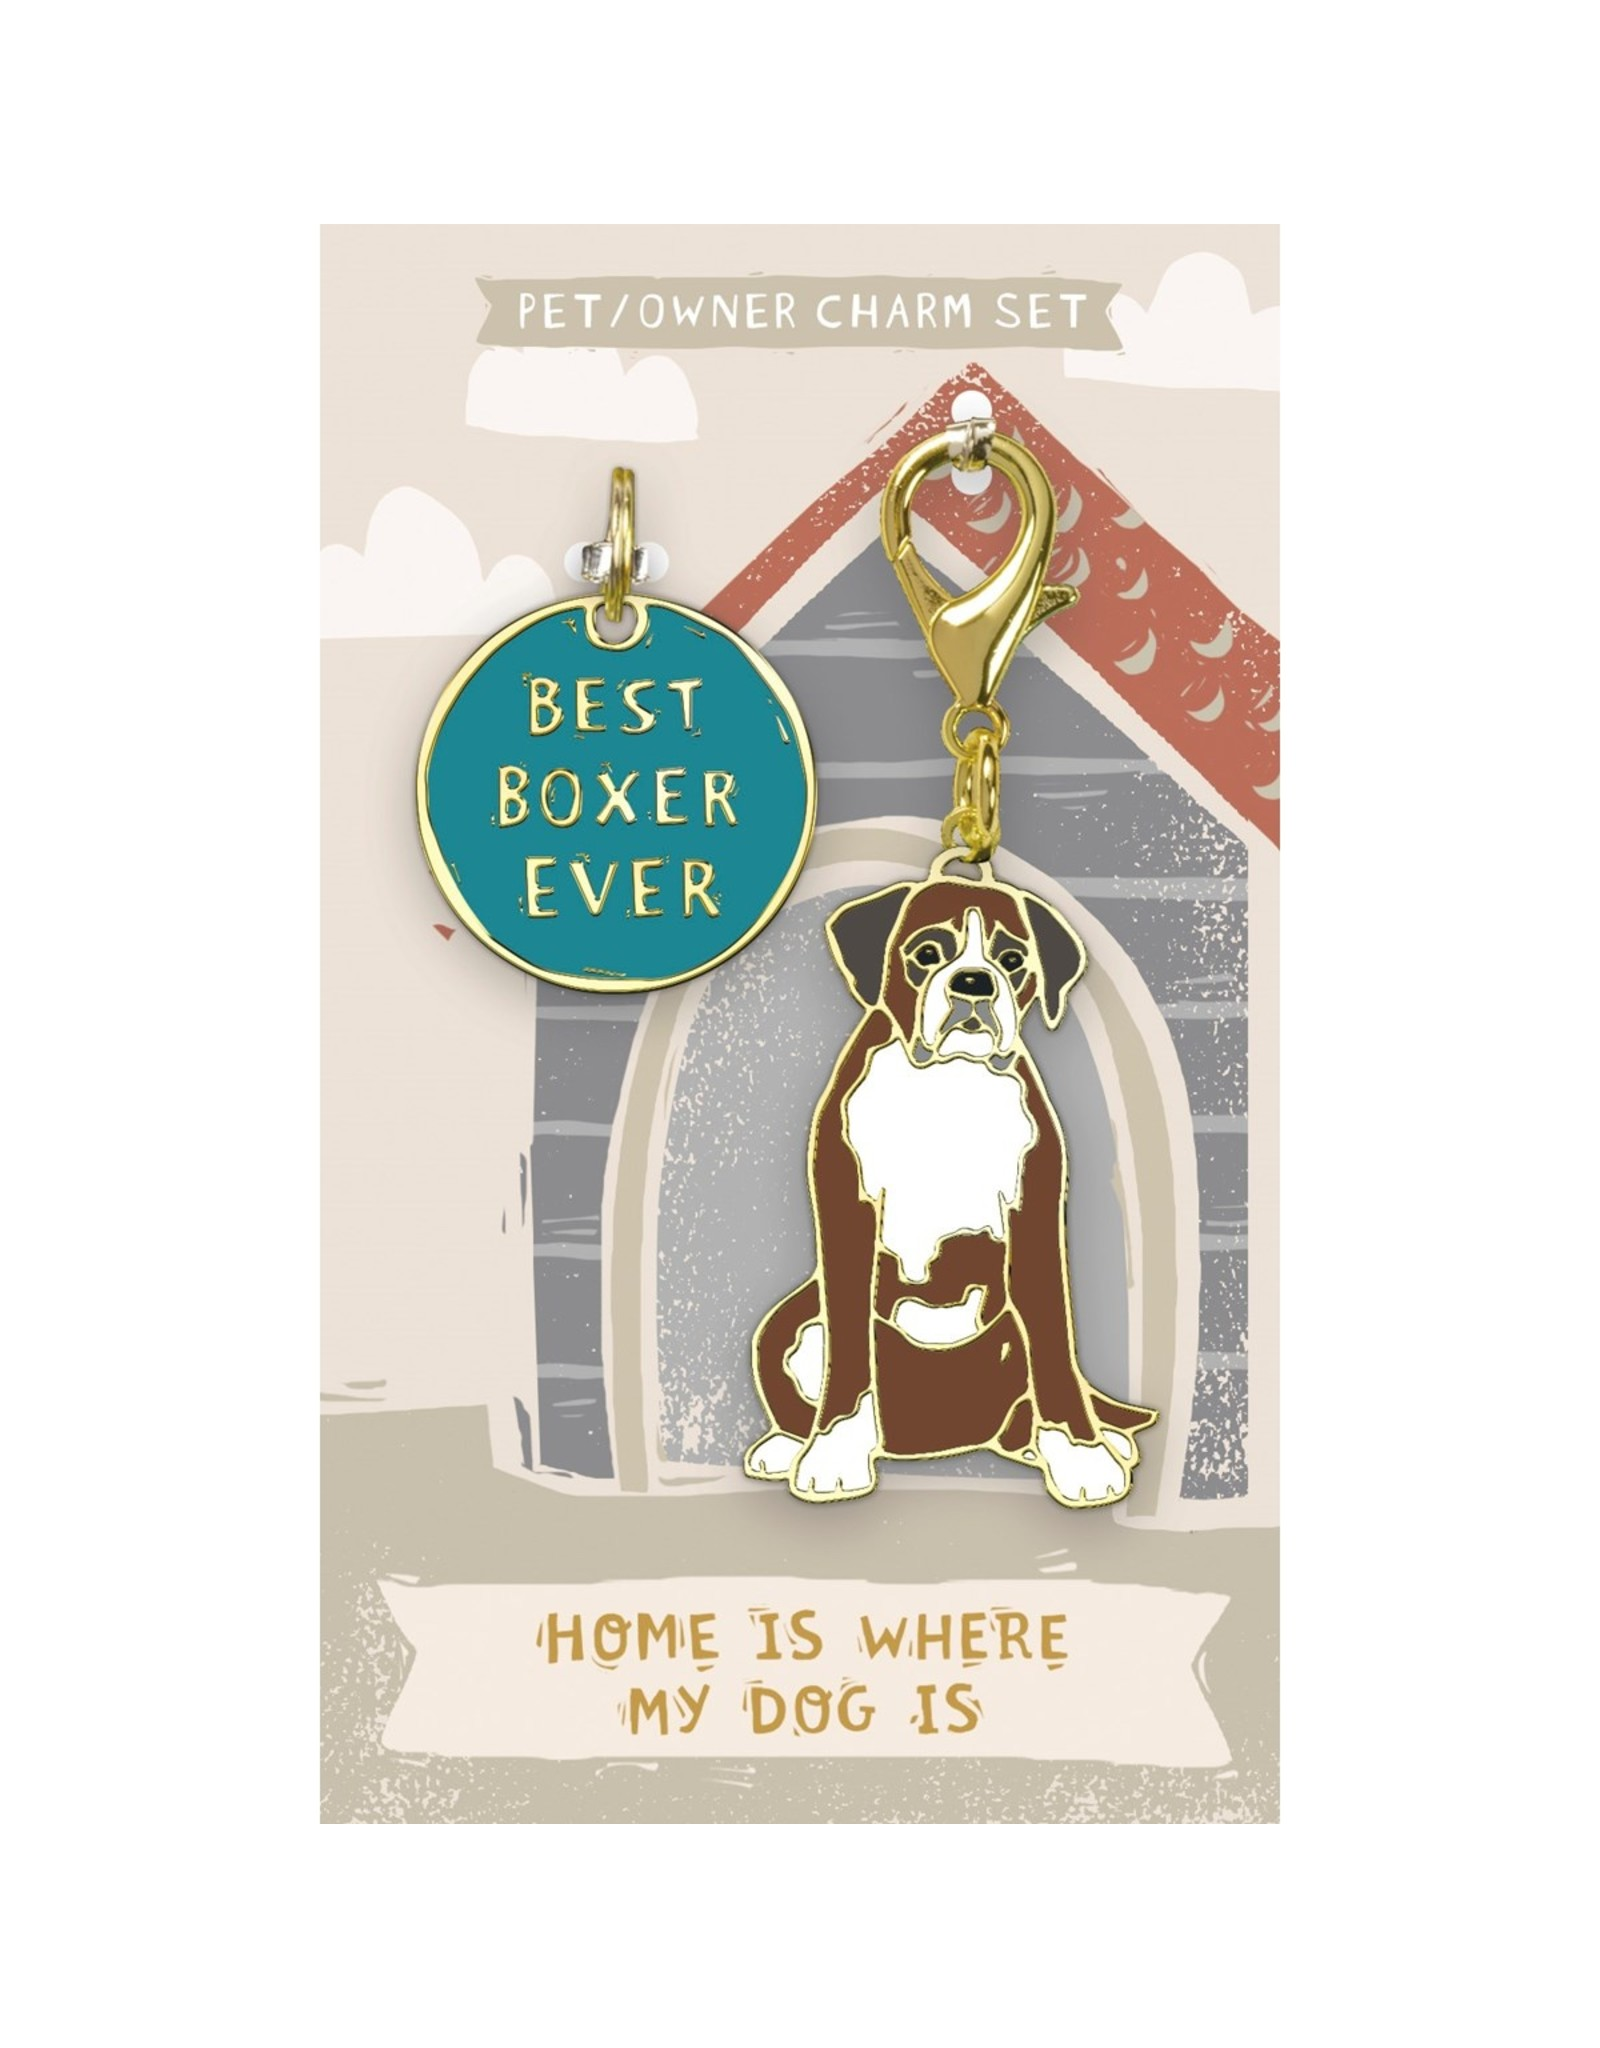 Pet/Owner Charm Set, Boxer